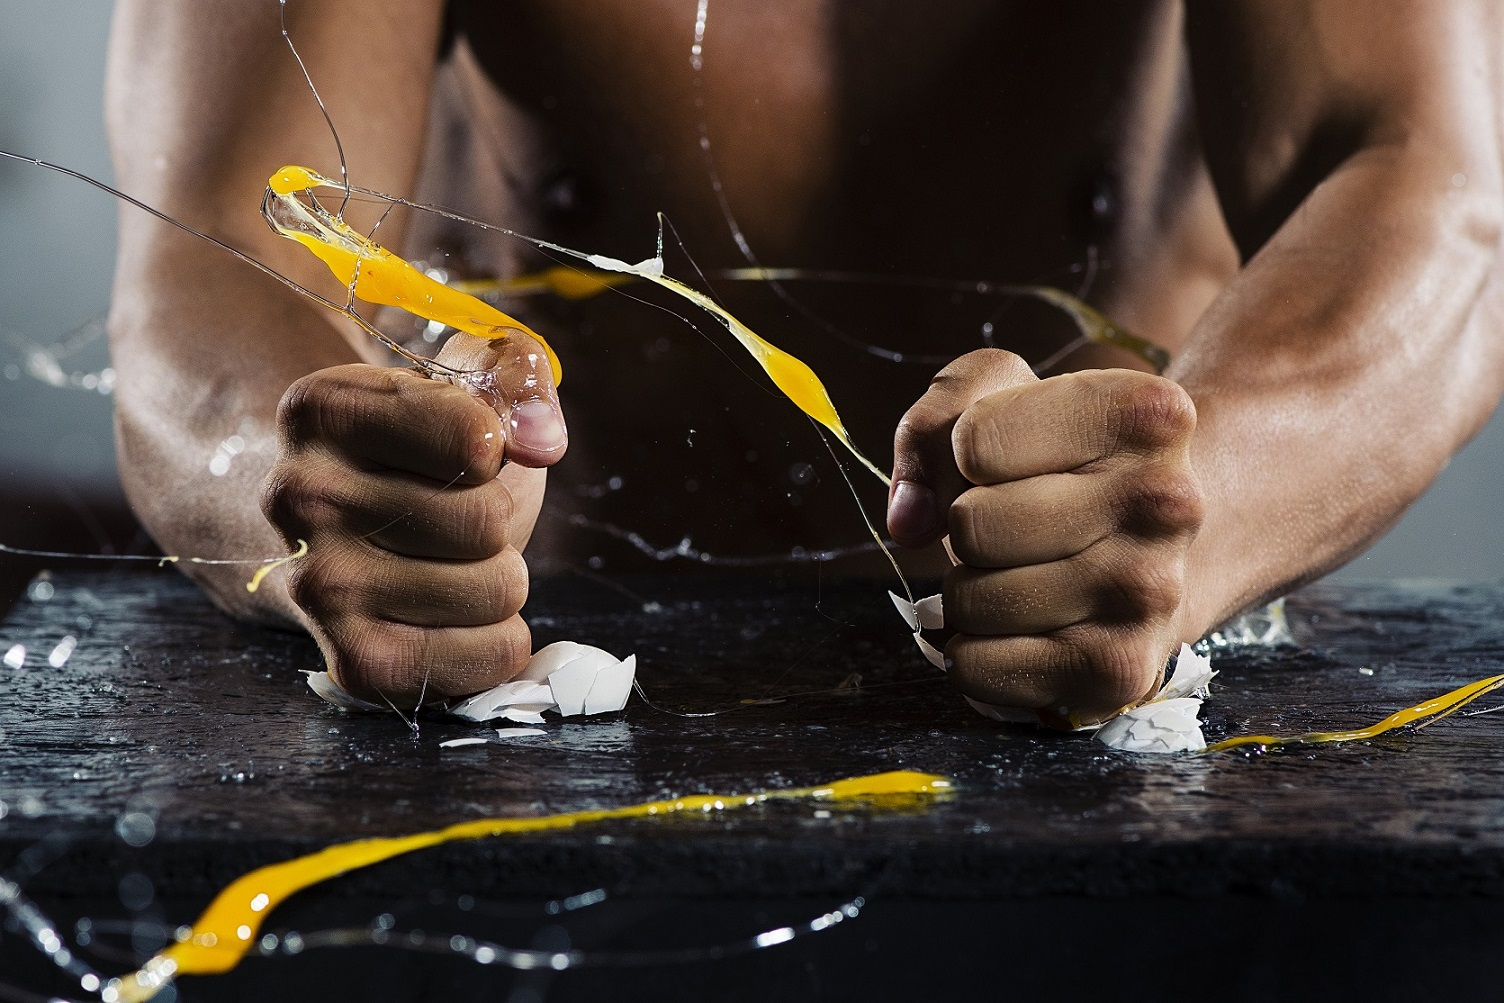 Image of MMA artist Tom 'Fire Kid' Duquesnoy crushing two eggs with his fists, showing the split-second moments of impact. Image taken by professional sports photographer Tom Miles using the Nikon D500, which shoots at 10 frames per second.